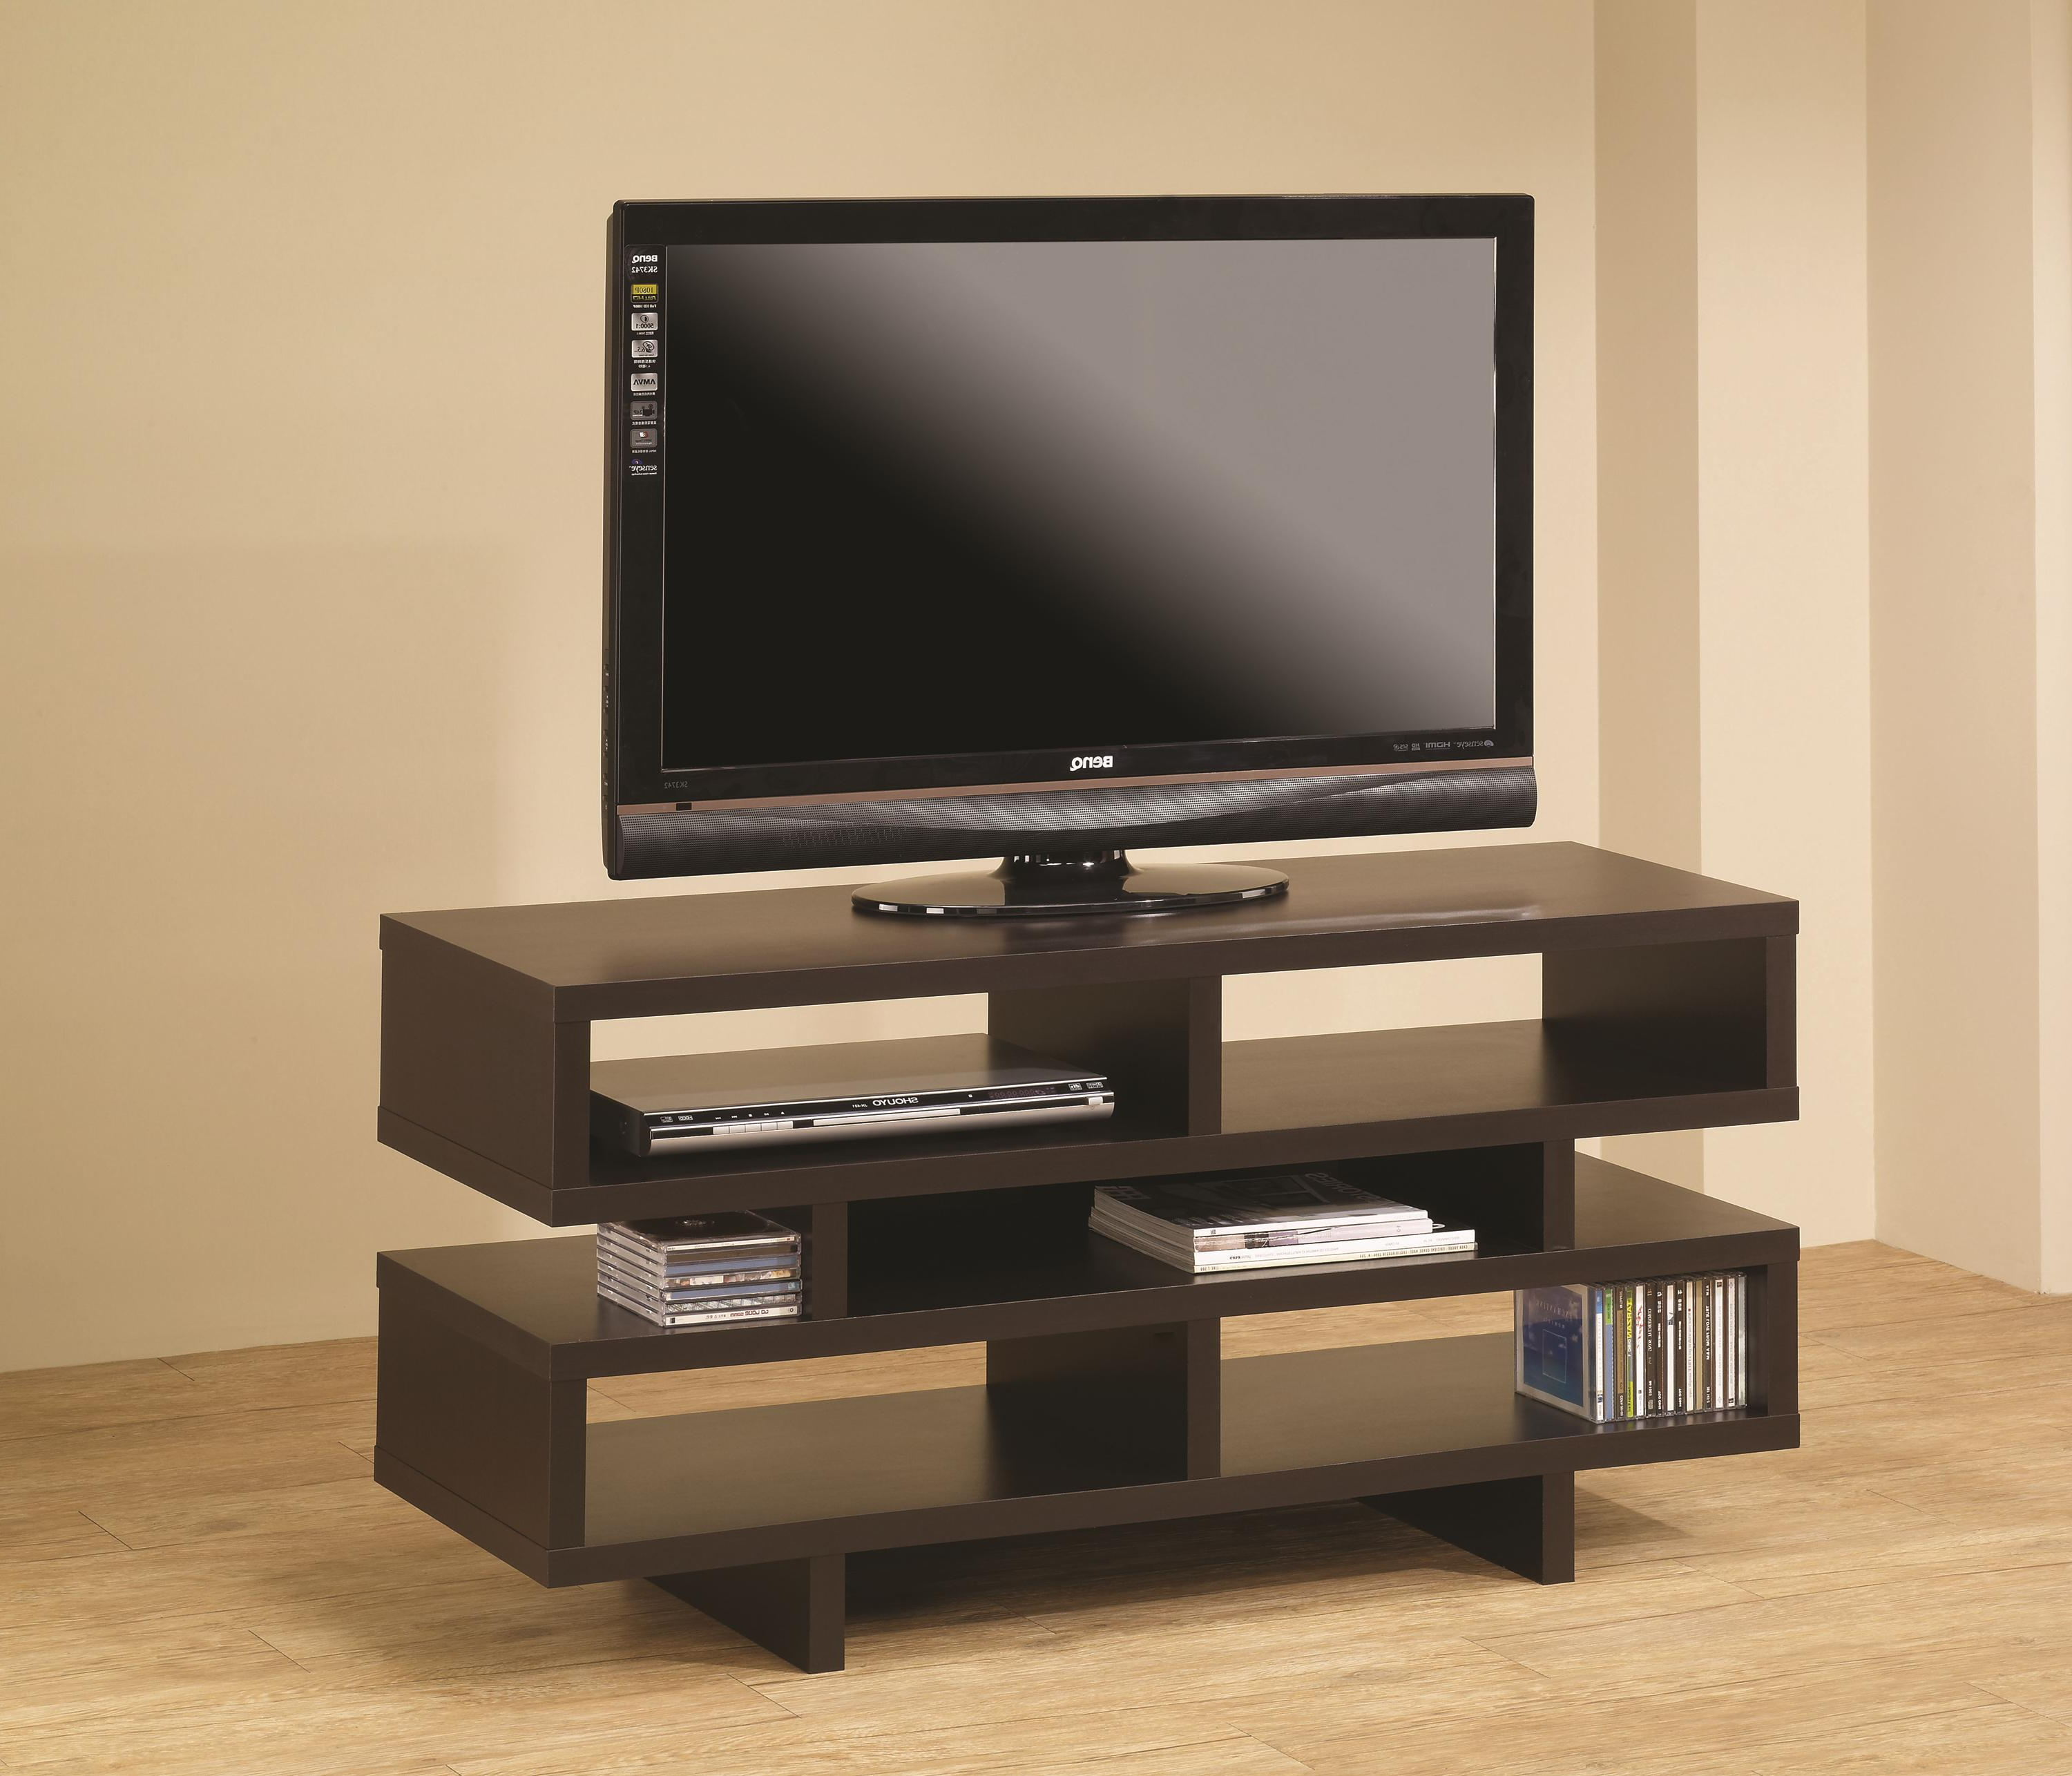 Coaster Tv Stands 700720 Contemporary Tv Console With Open Storage With Current Very Cheap Tv Units (View 11 of 20)